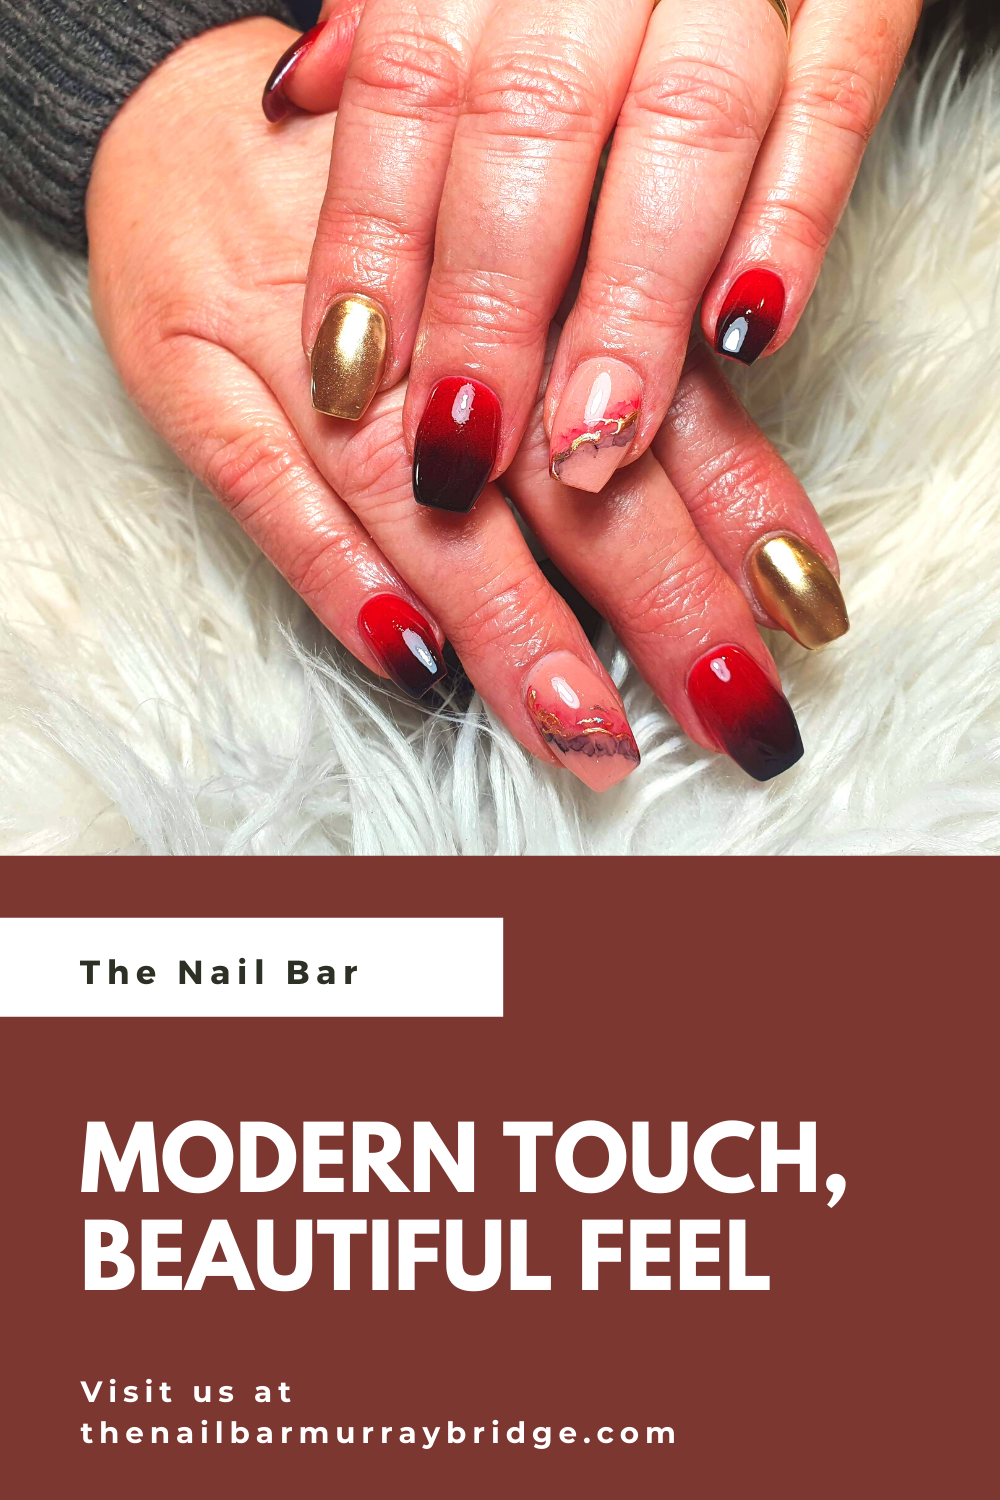 To know more about our services and prices visit us at our website or call us at 08 8532 6880 : : #nailart #thenailbarmb #nails #gelnails #acrylicnail #glitternails #murraybridge